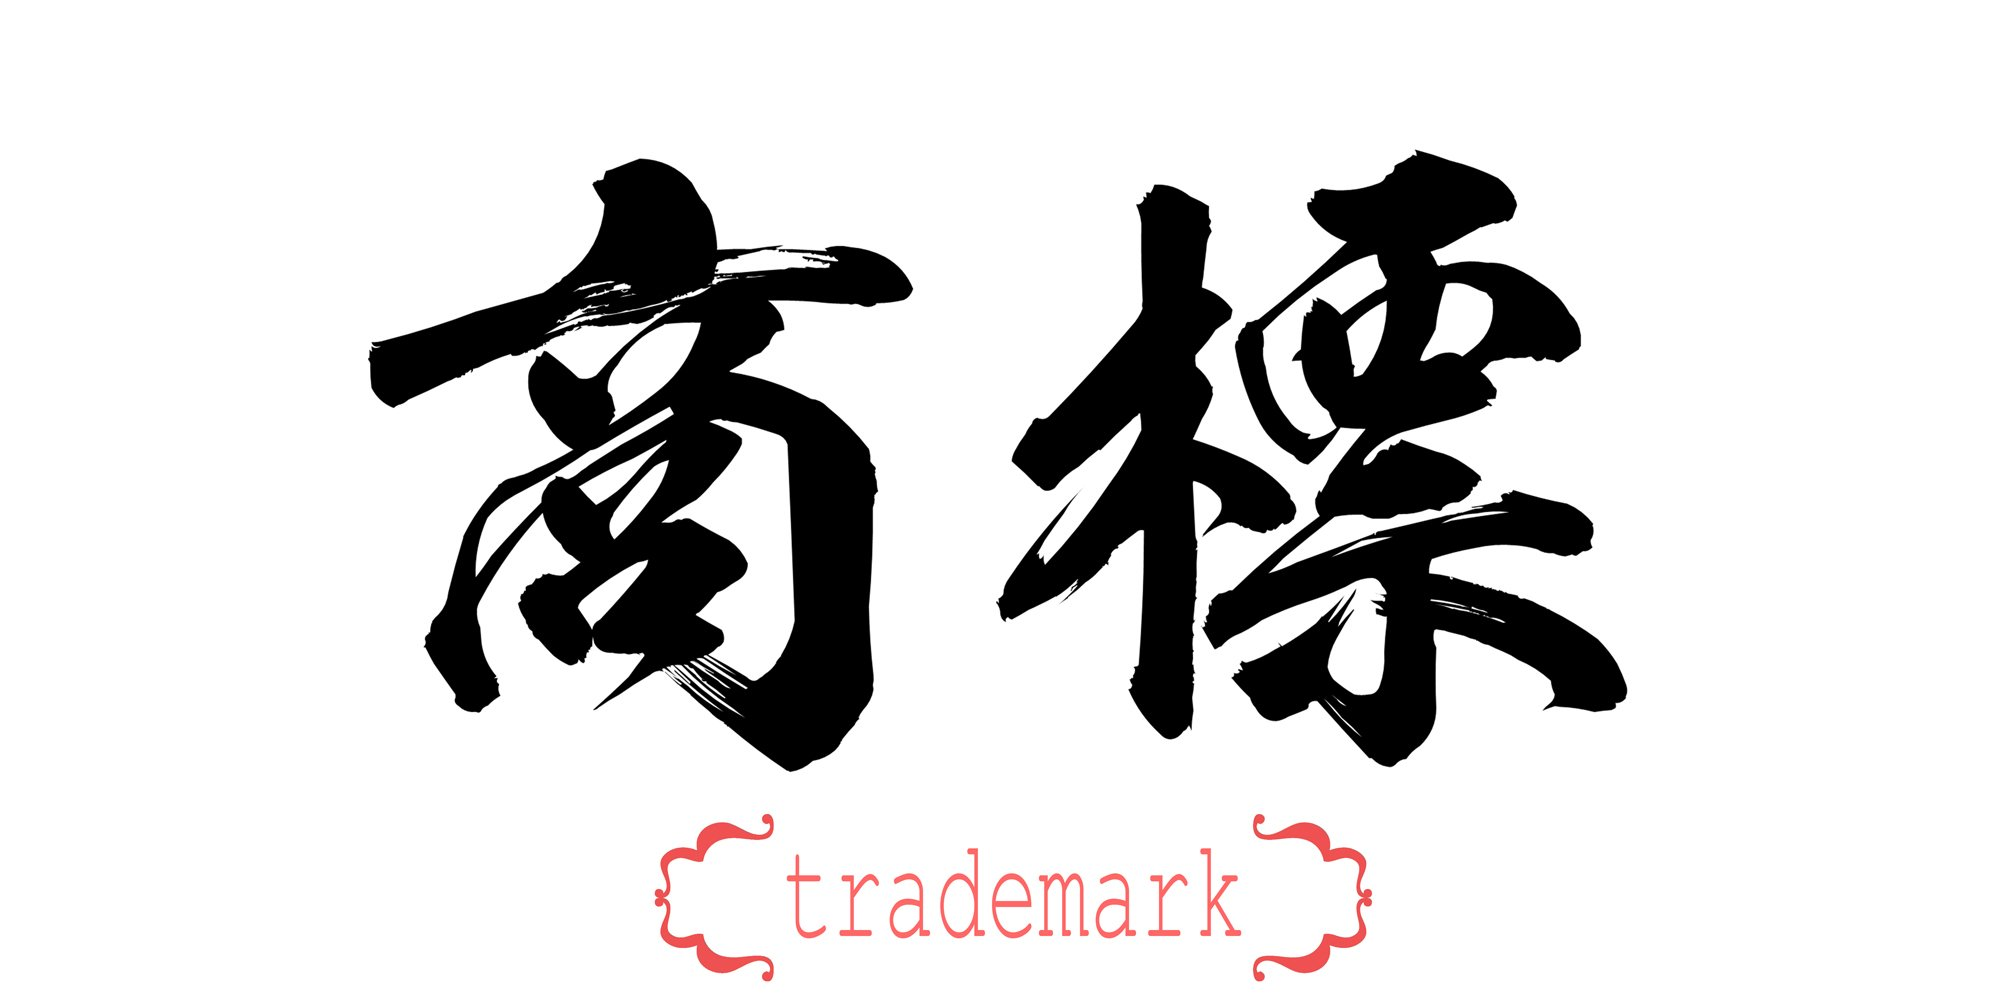 Revised Trademark Law Targets Bad Faith Registration and Infringements